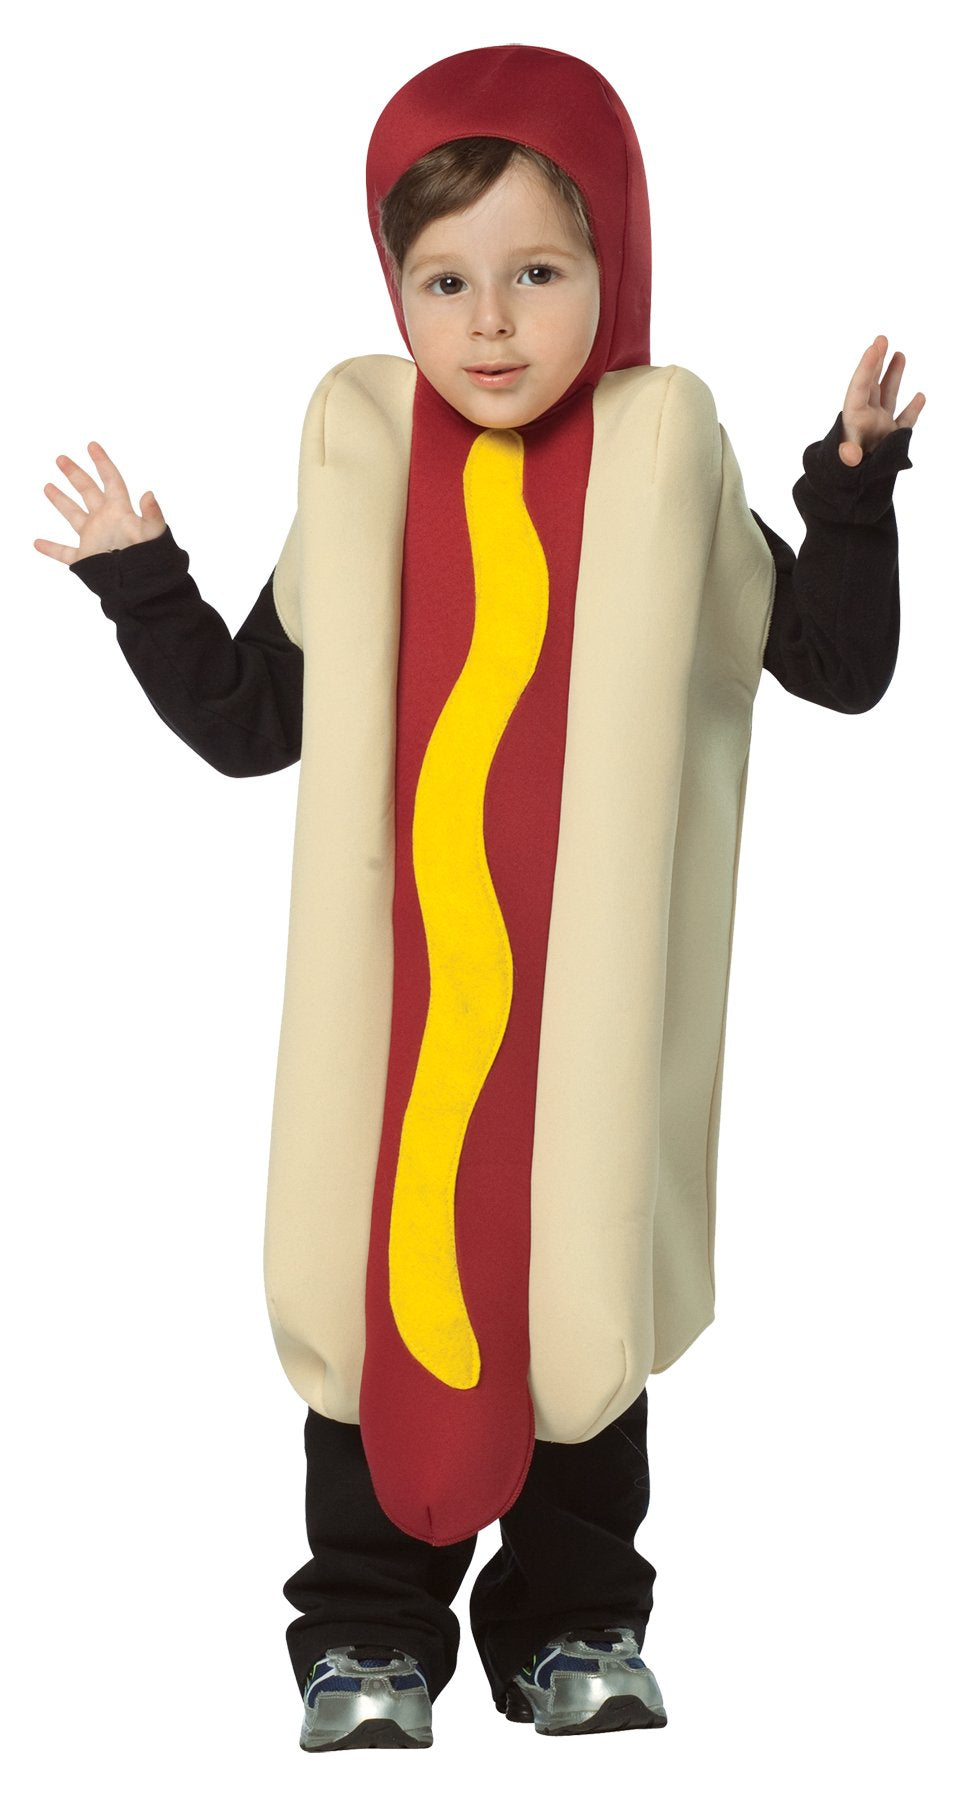 Hot Dog Boys Costume Lightweight Boys Costume Small 4-6